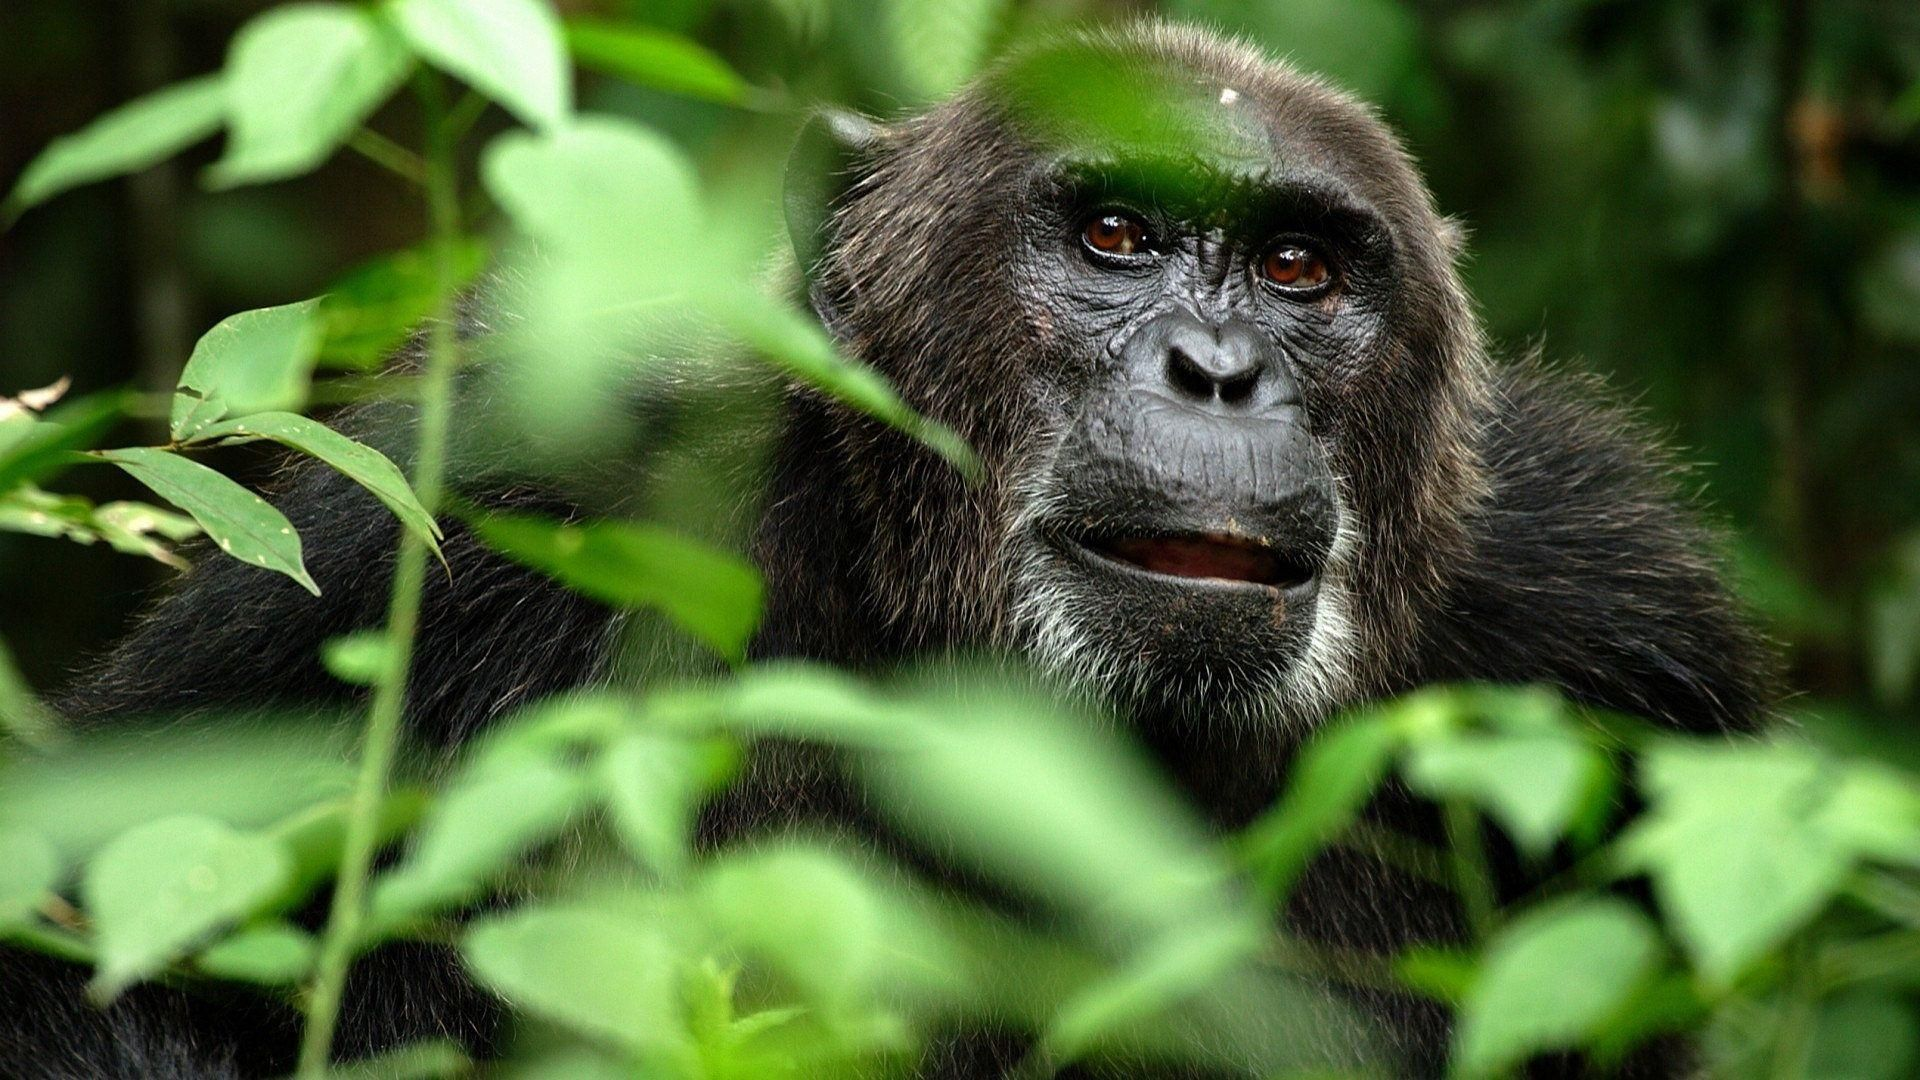 Pin by Khalilahmadkhan on Monkey HD Wallpapers and